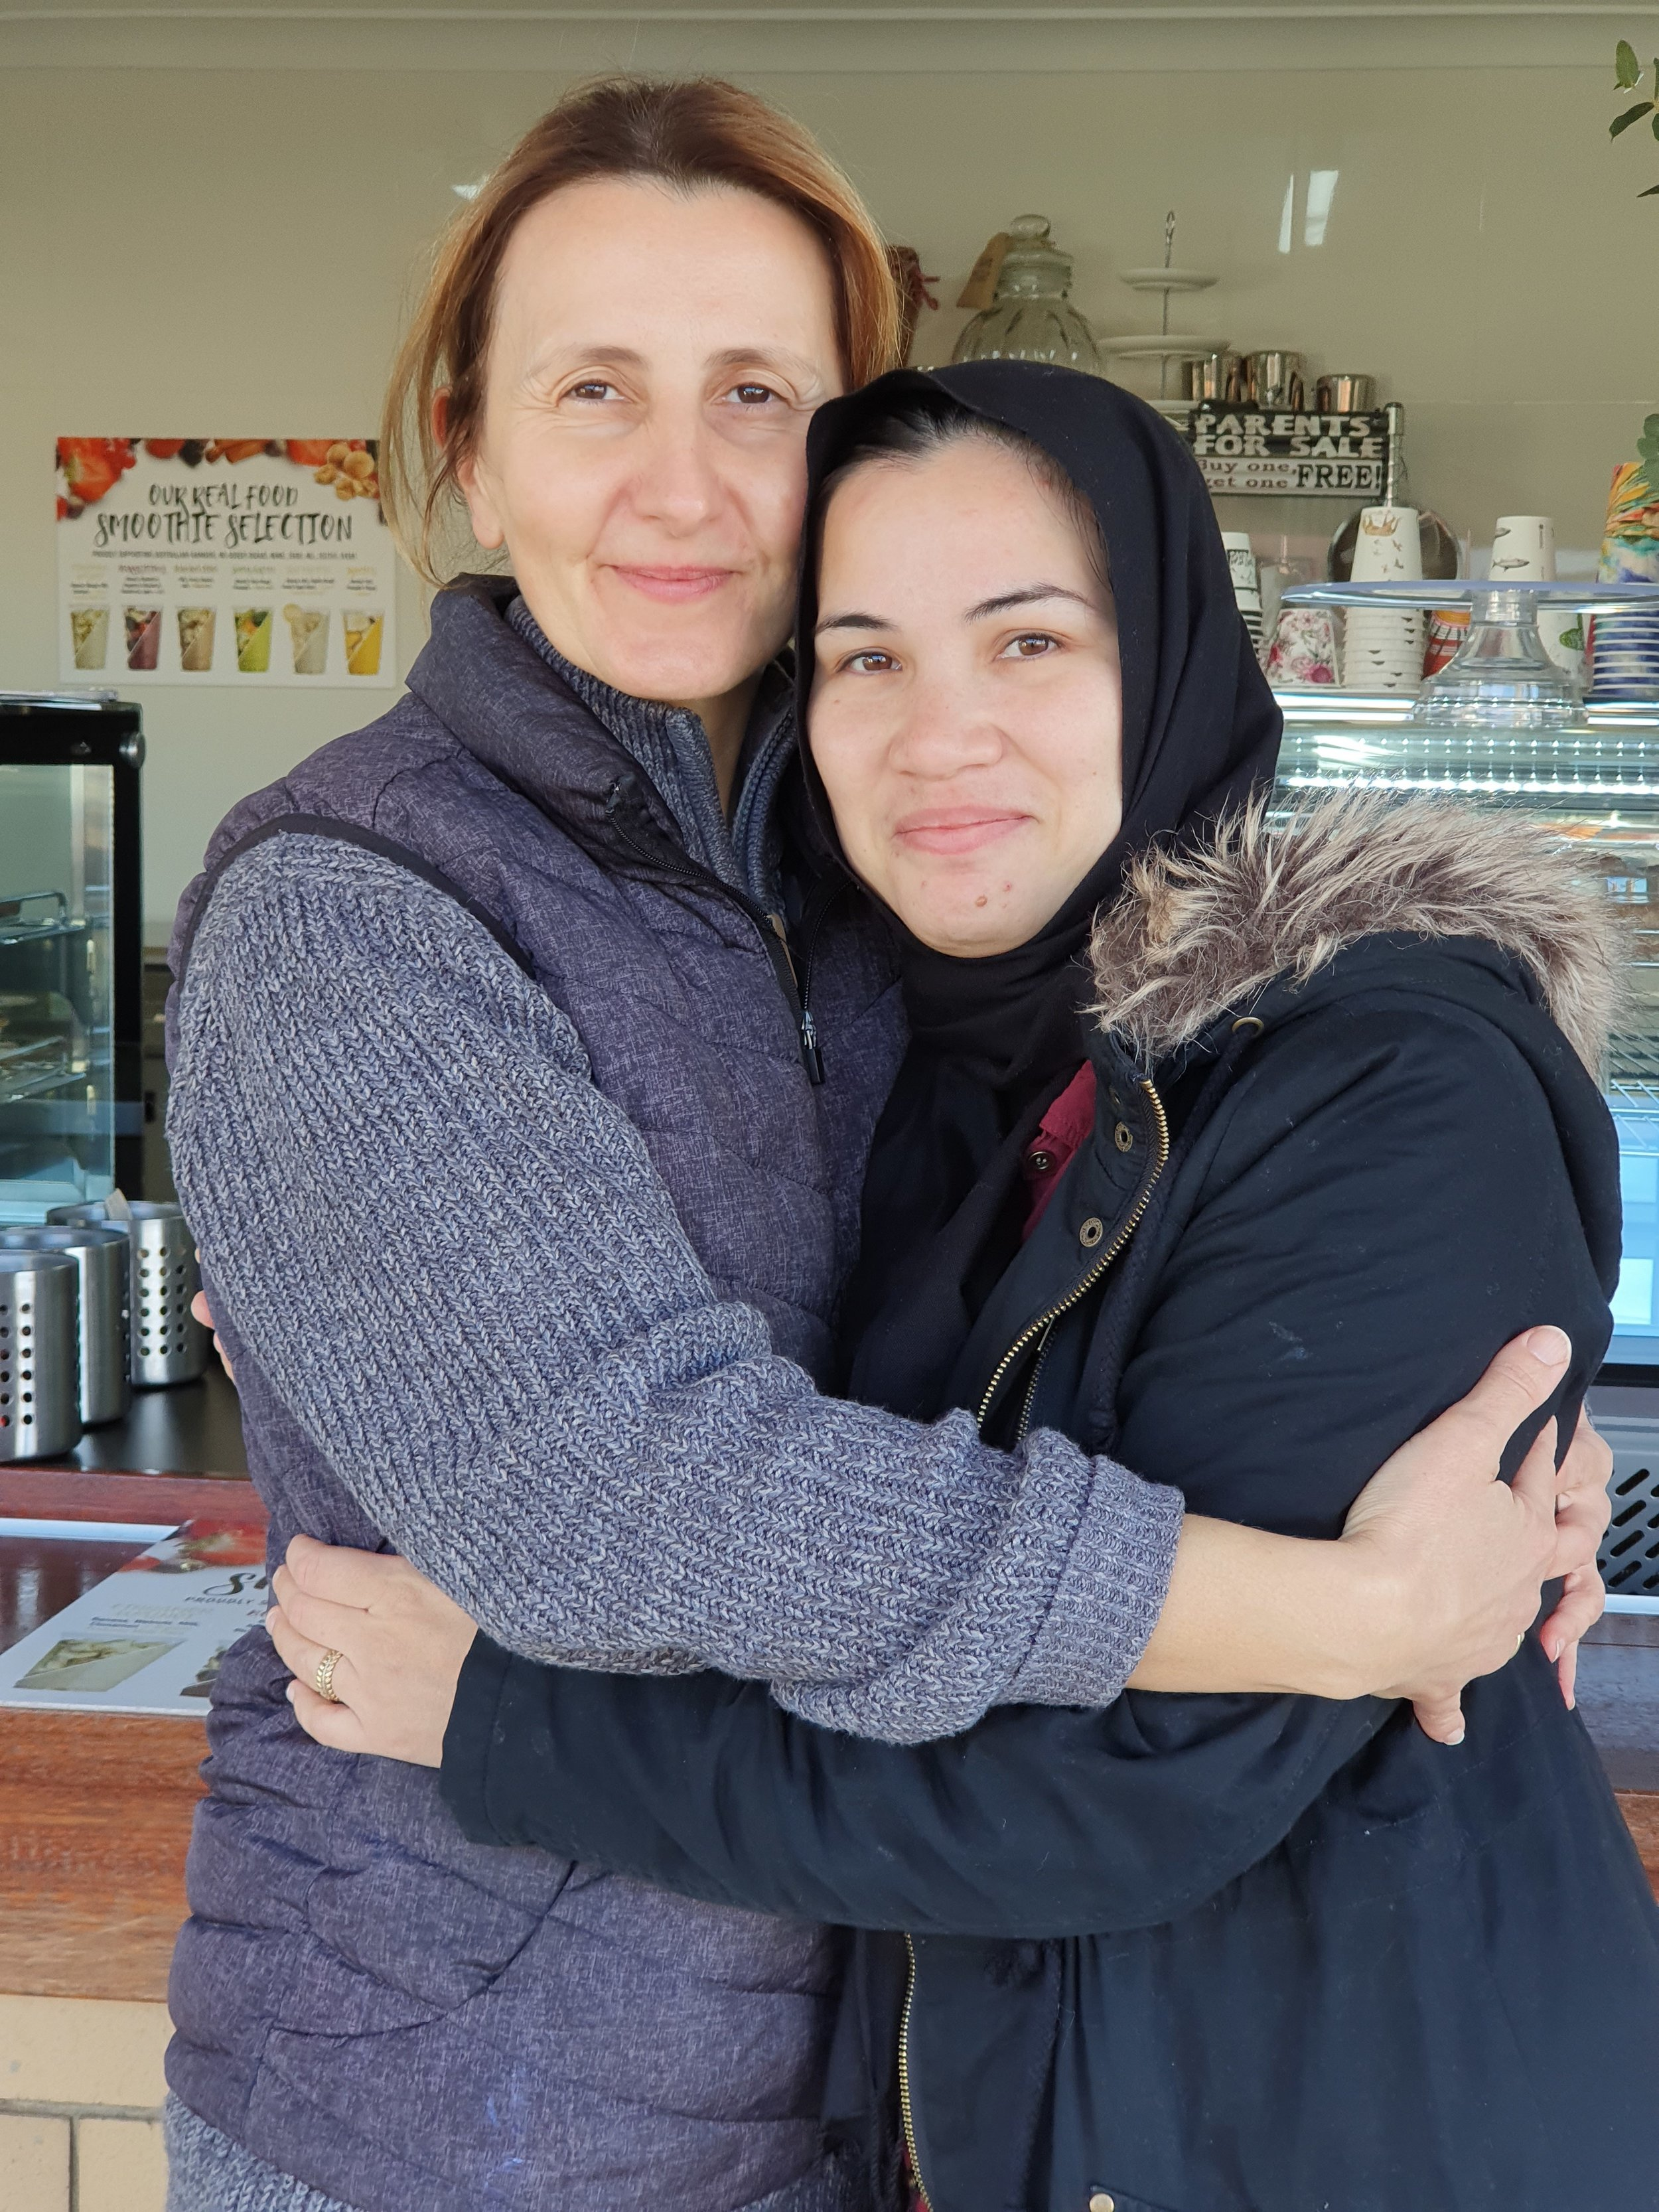 Vesna ran the Jillaroo coffe shop in Moree. She loved meeting someone from Afghanistan, and to speak about Khalid Hosseini's books. We got our coffe's for free and it gave our day a great start.jpg